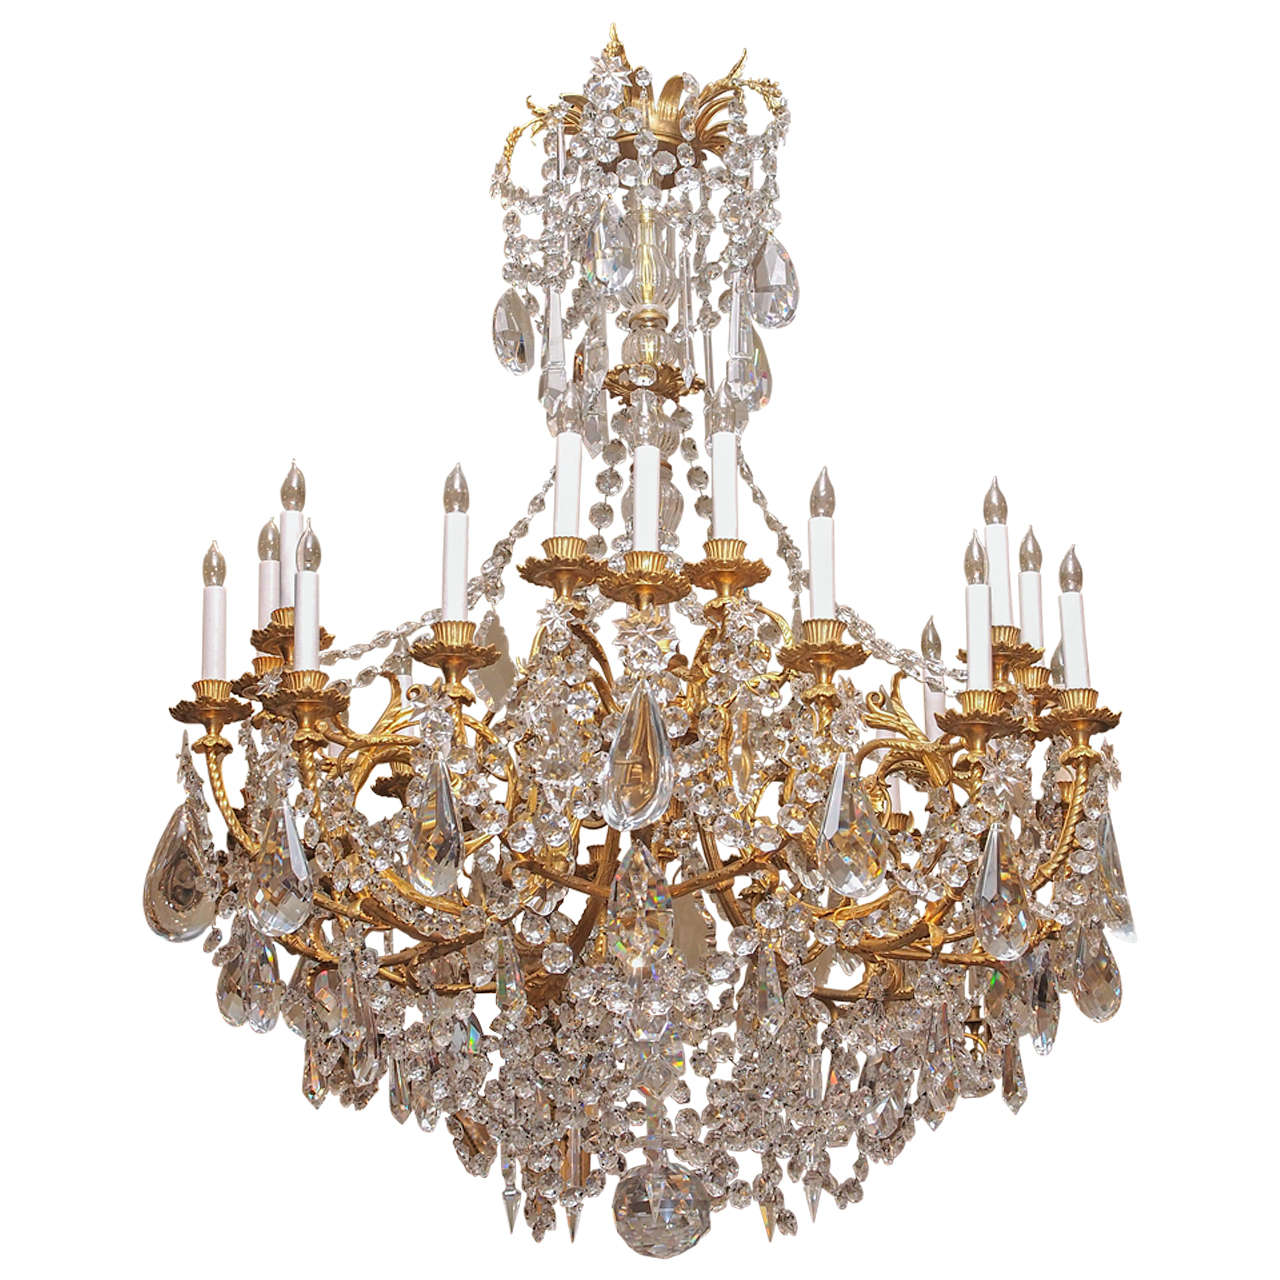 Antique French Baccarat Crystal and Bronze D'ore 24 Light Chandelier circa  1890 For Sale - Antique French Baccarat Crystal And Bronze D'ore 24 Light Chandelier